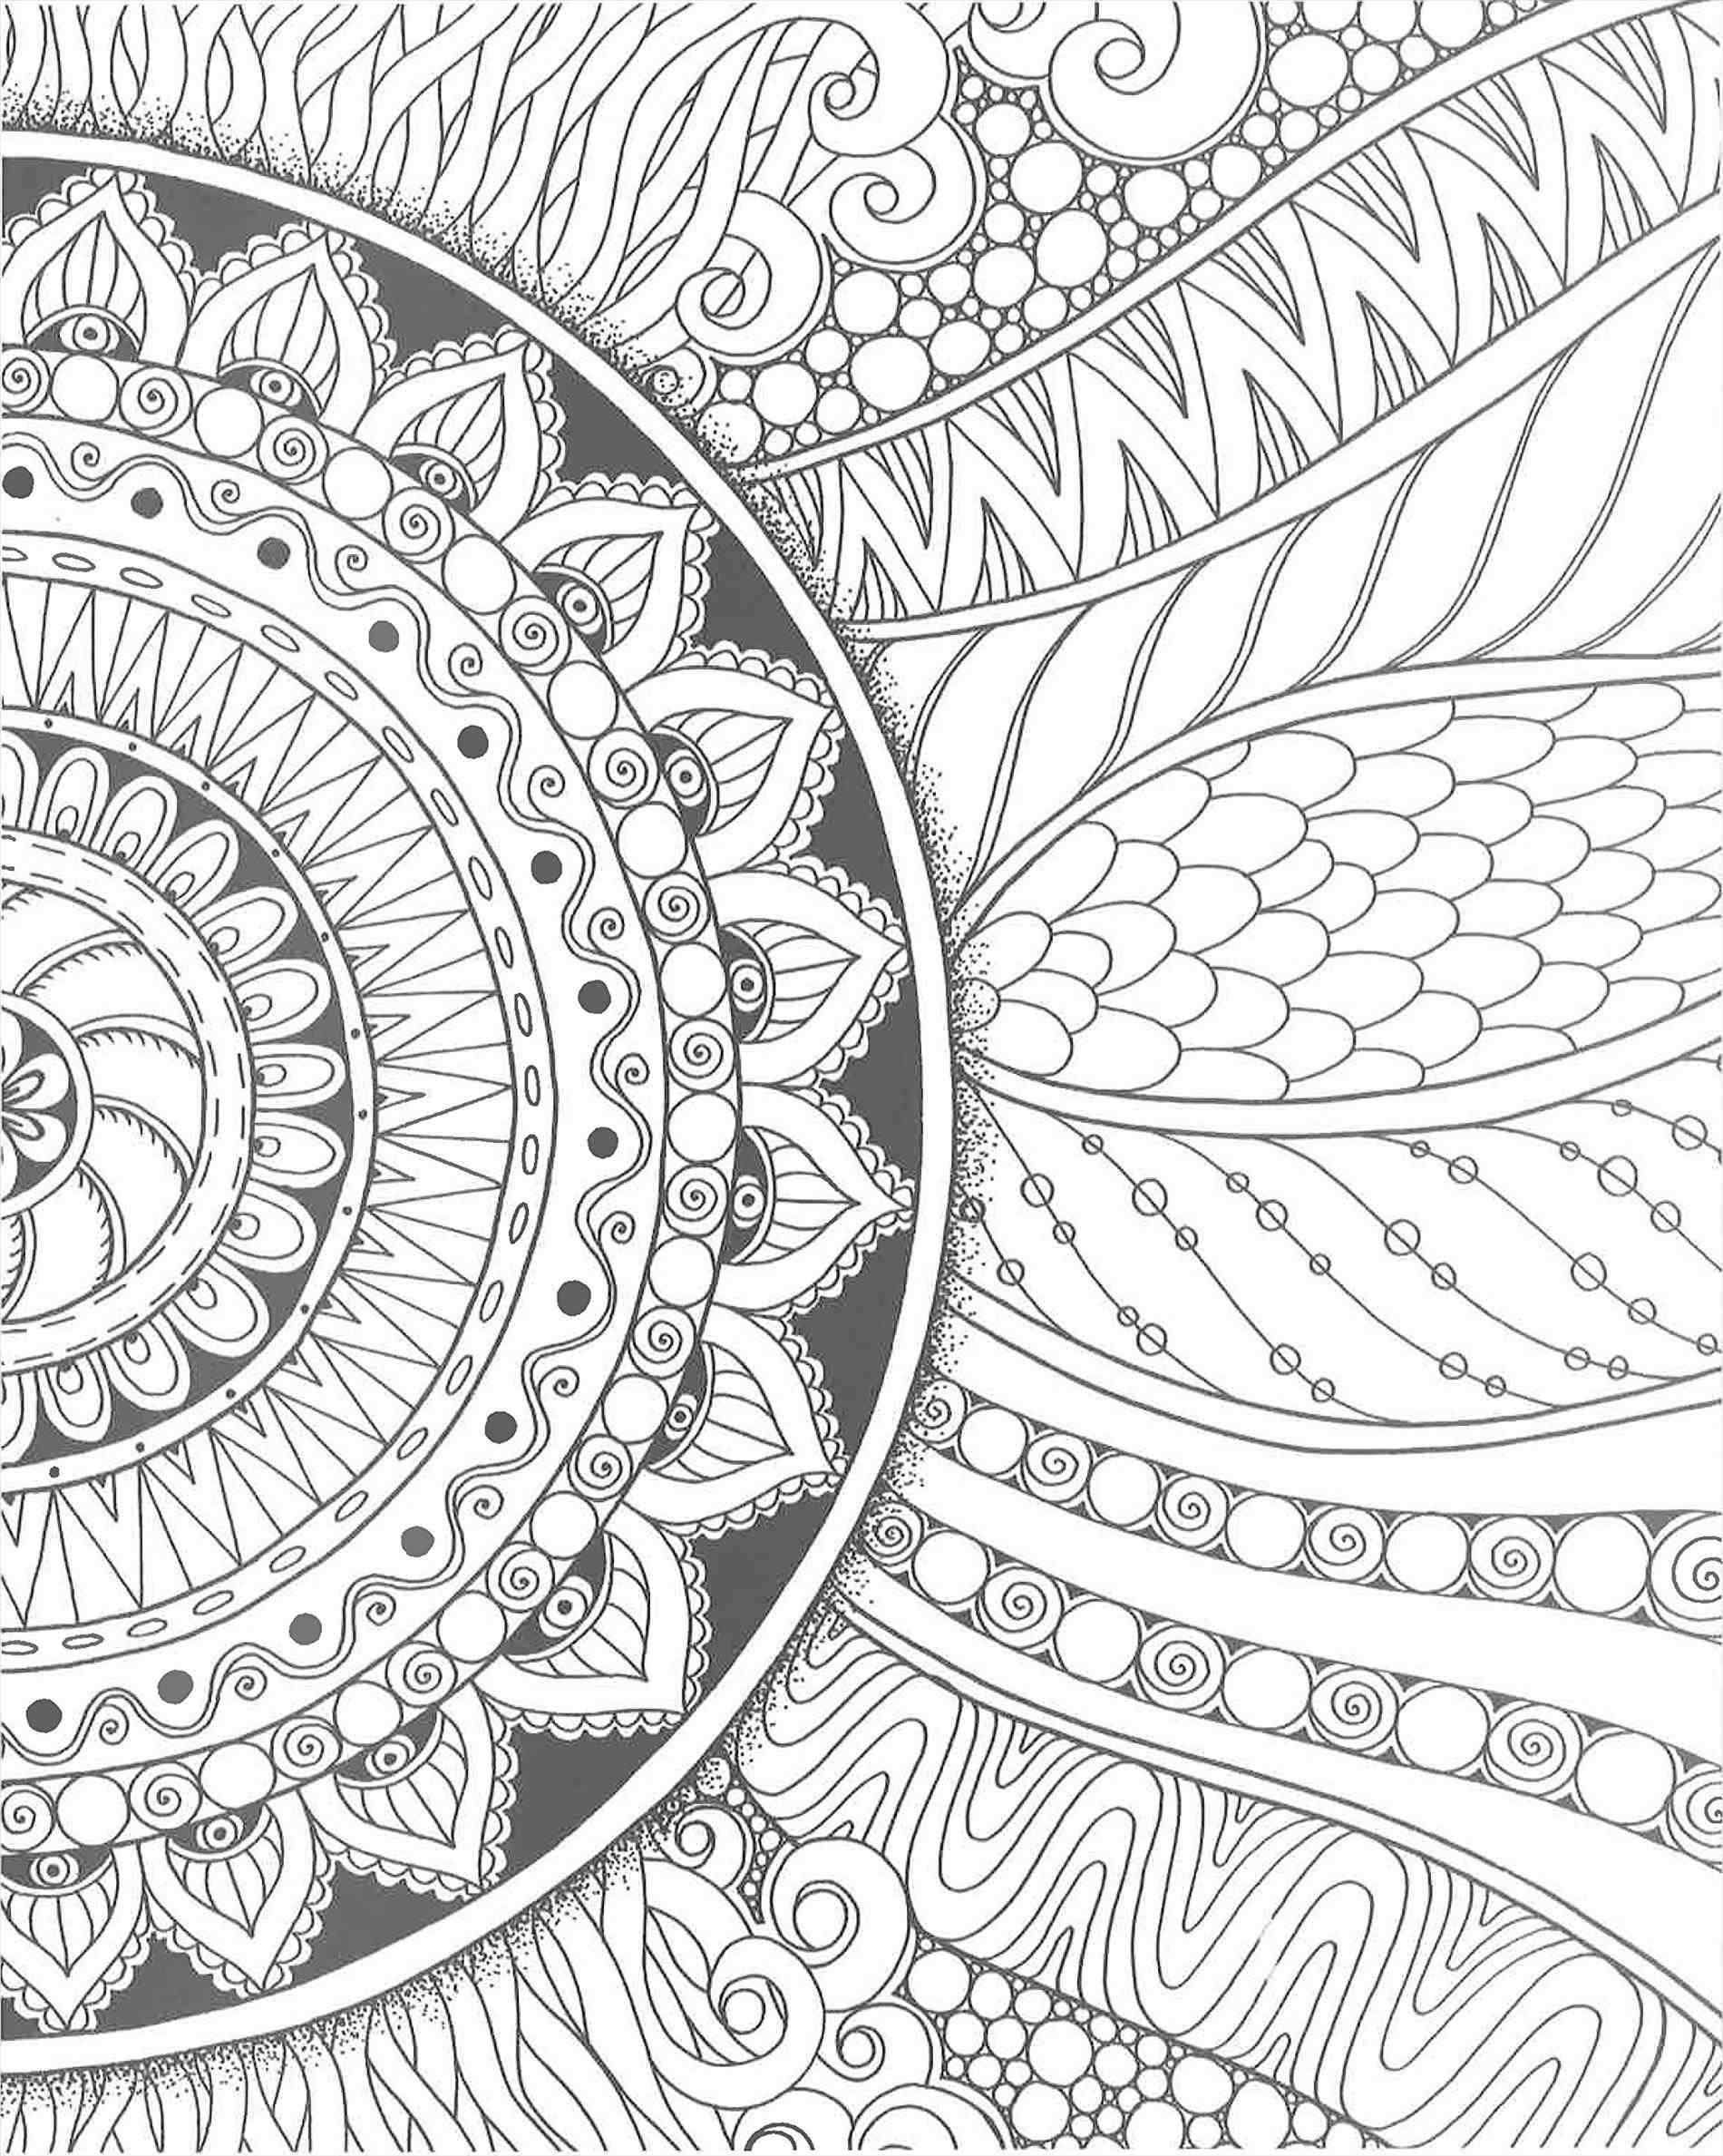 20 Awesome Designs To Draw Patterns Easy Ideas Prekhome Mandala Coloring Pages Drawing Tutorial Easy Pattern Drawing